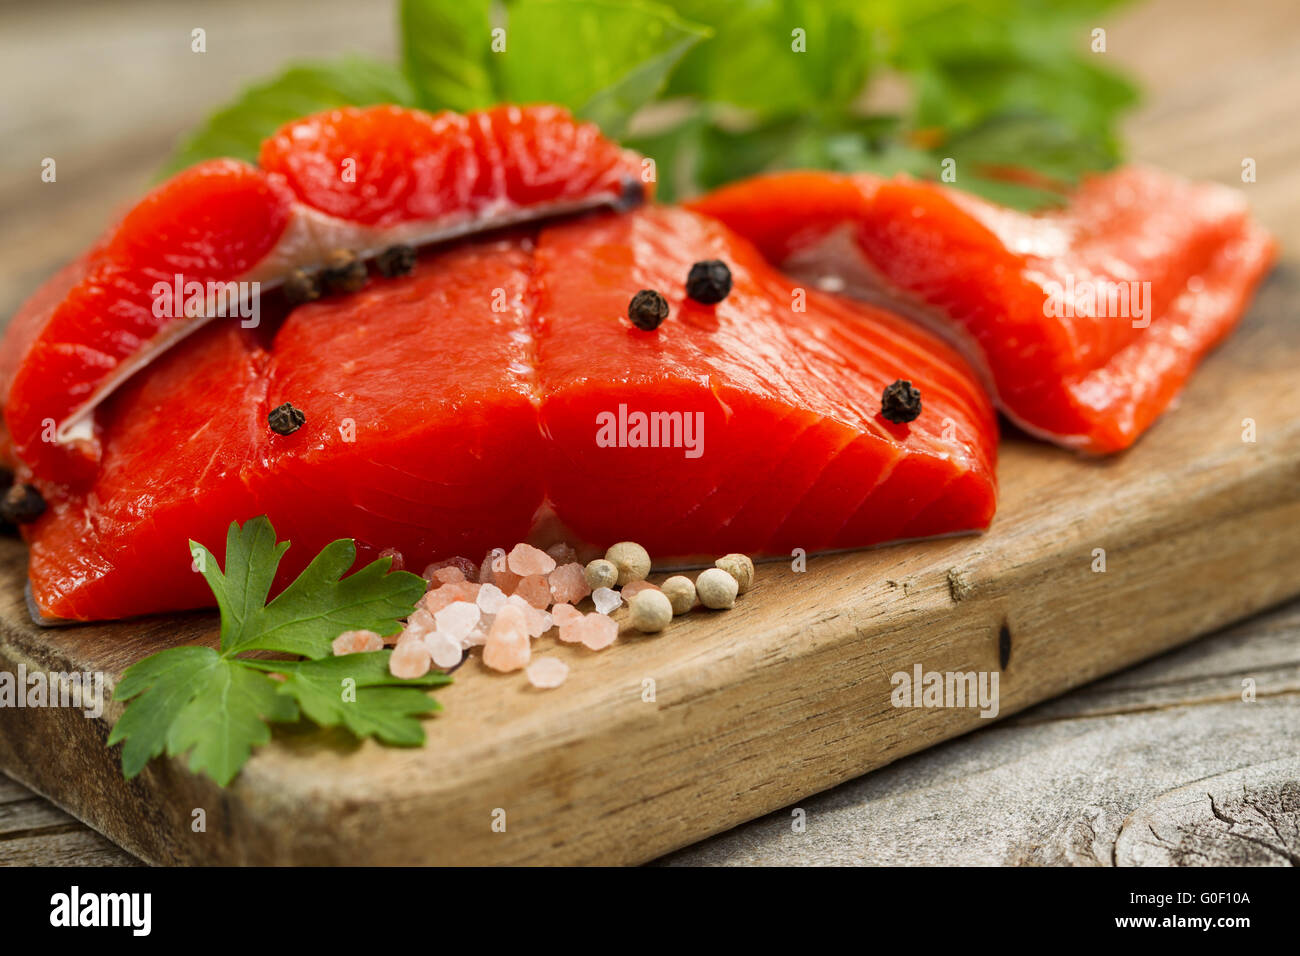 Fresh Copper River Salmon fillets on rustic wooden server with spices and herbs Stock Photo